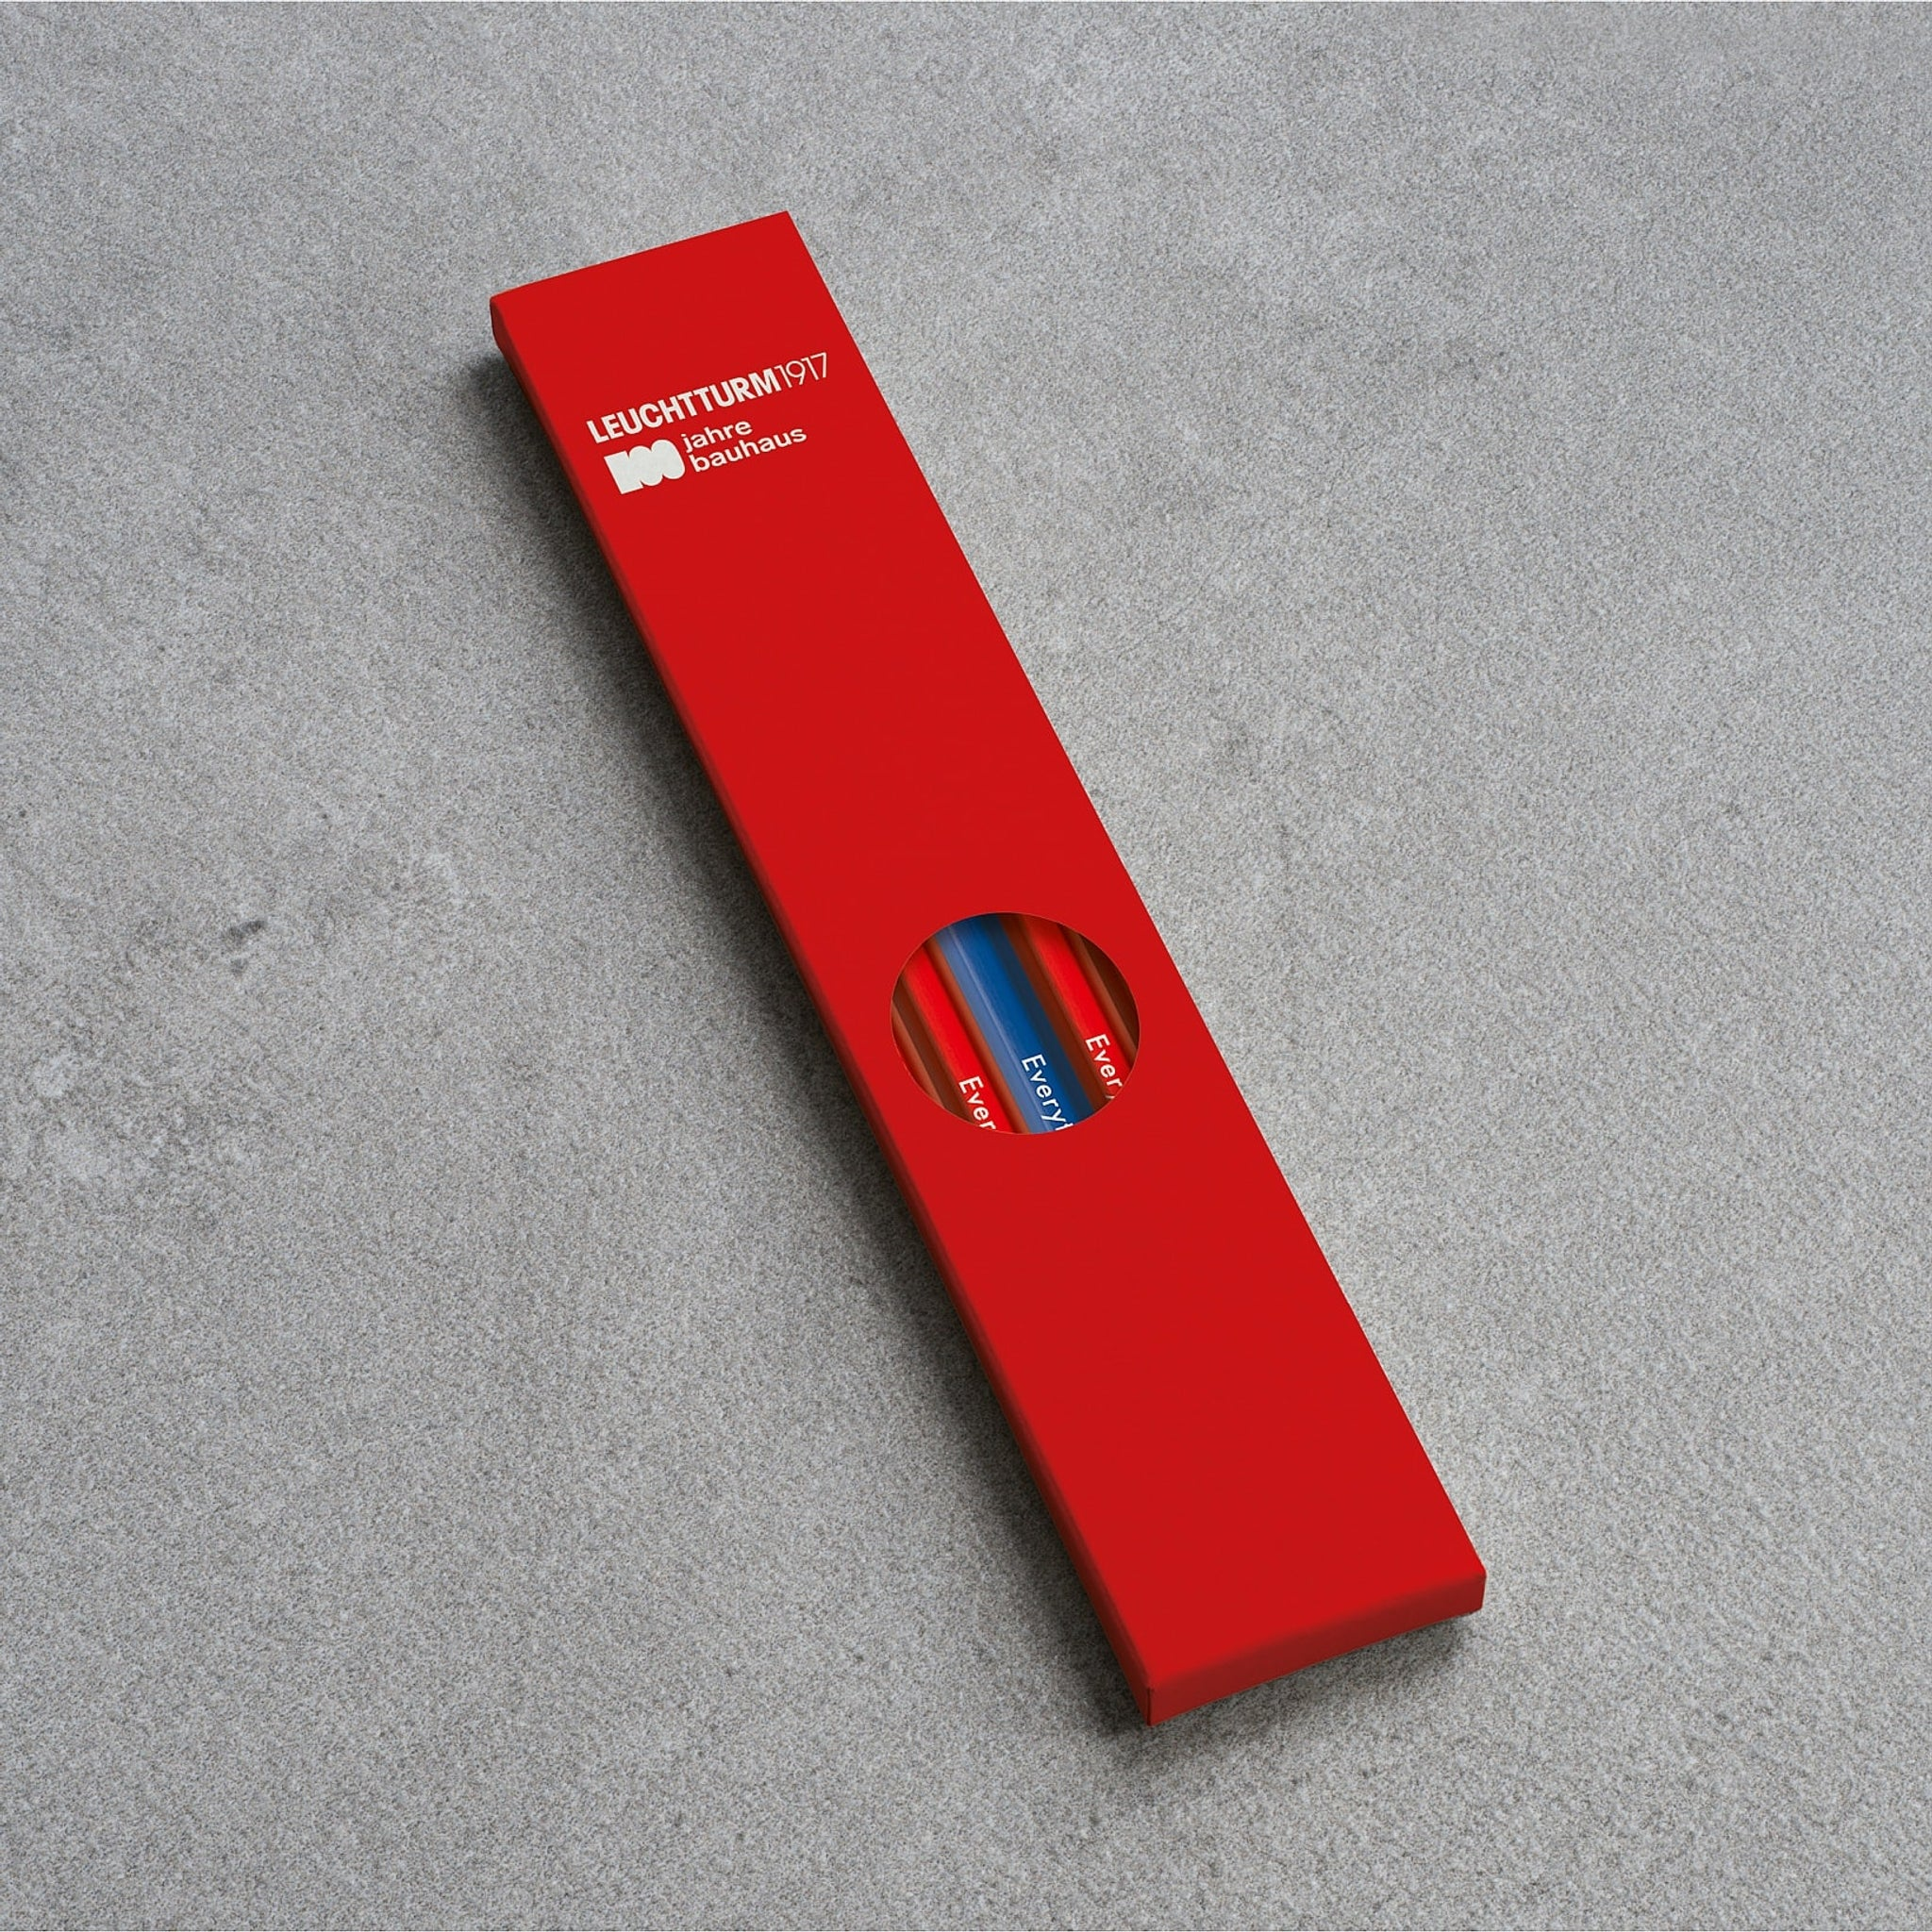 Leuchtturm1917 Bauhaus 100 Pencil Assorted Unit (4xRed, 1xRoyal Blue)